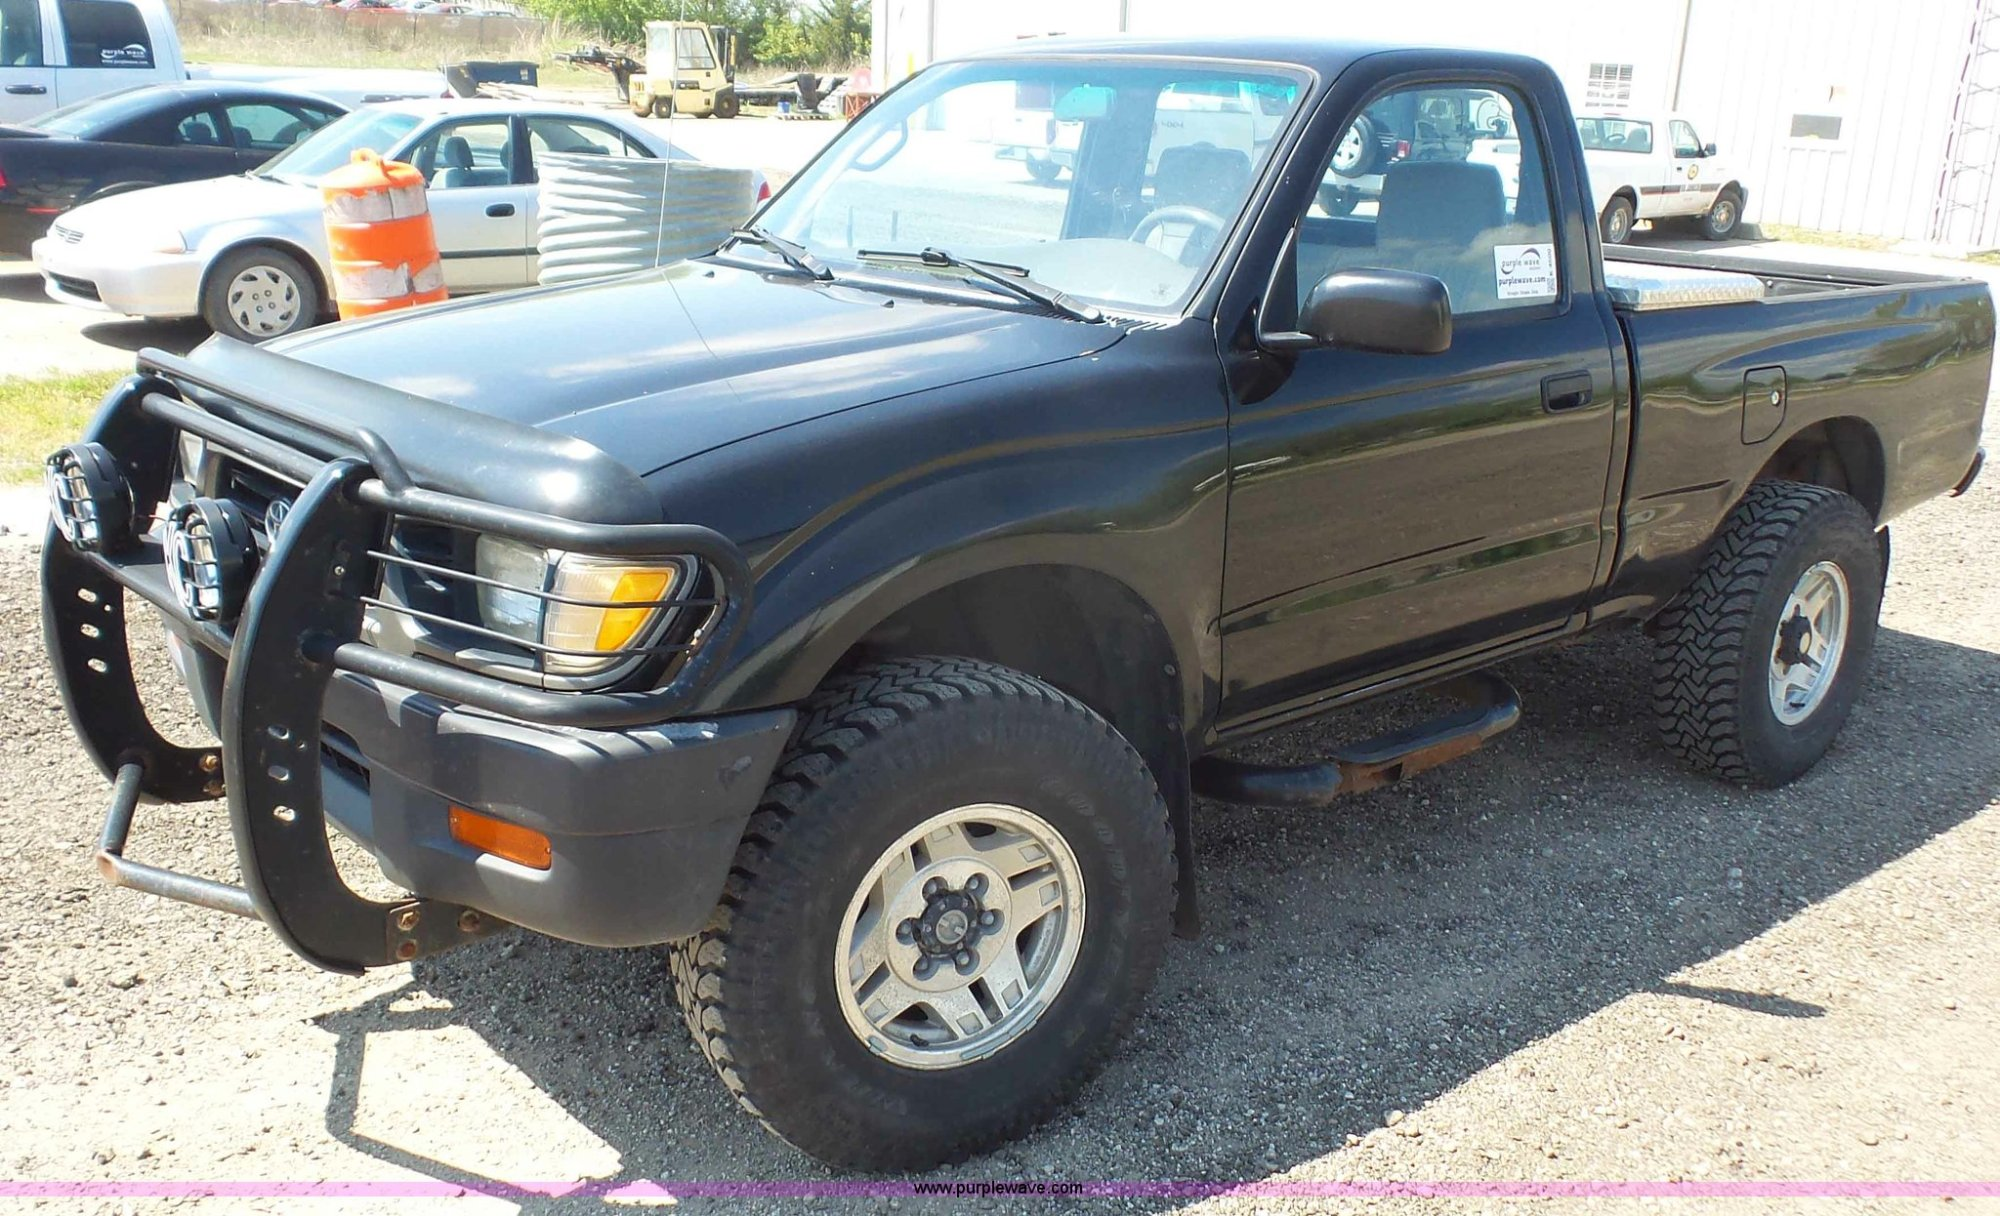 hight resolution of k4600 image for item k4600 1996 toyota tacoma pickup truck